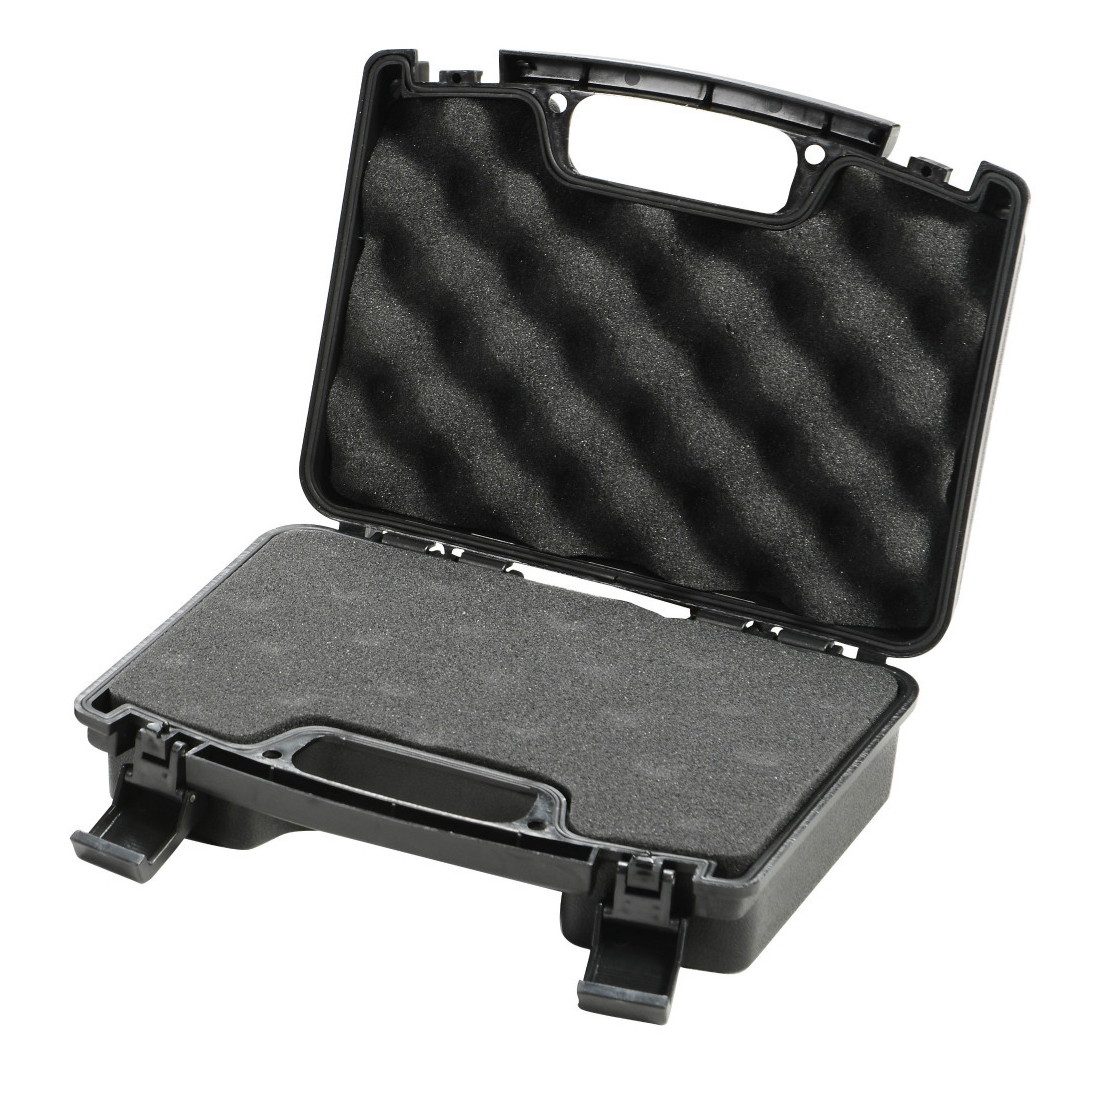 Hunting ABS Pistol Case Tactical Hard Pistol Storage Case Gun Case Padded Hunting Accessories Carry Boxs For Hunting Airsoft